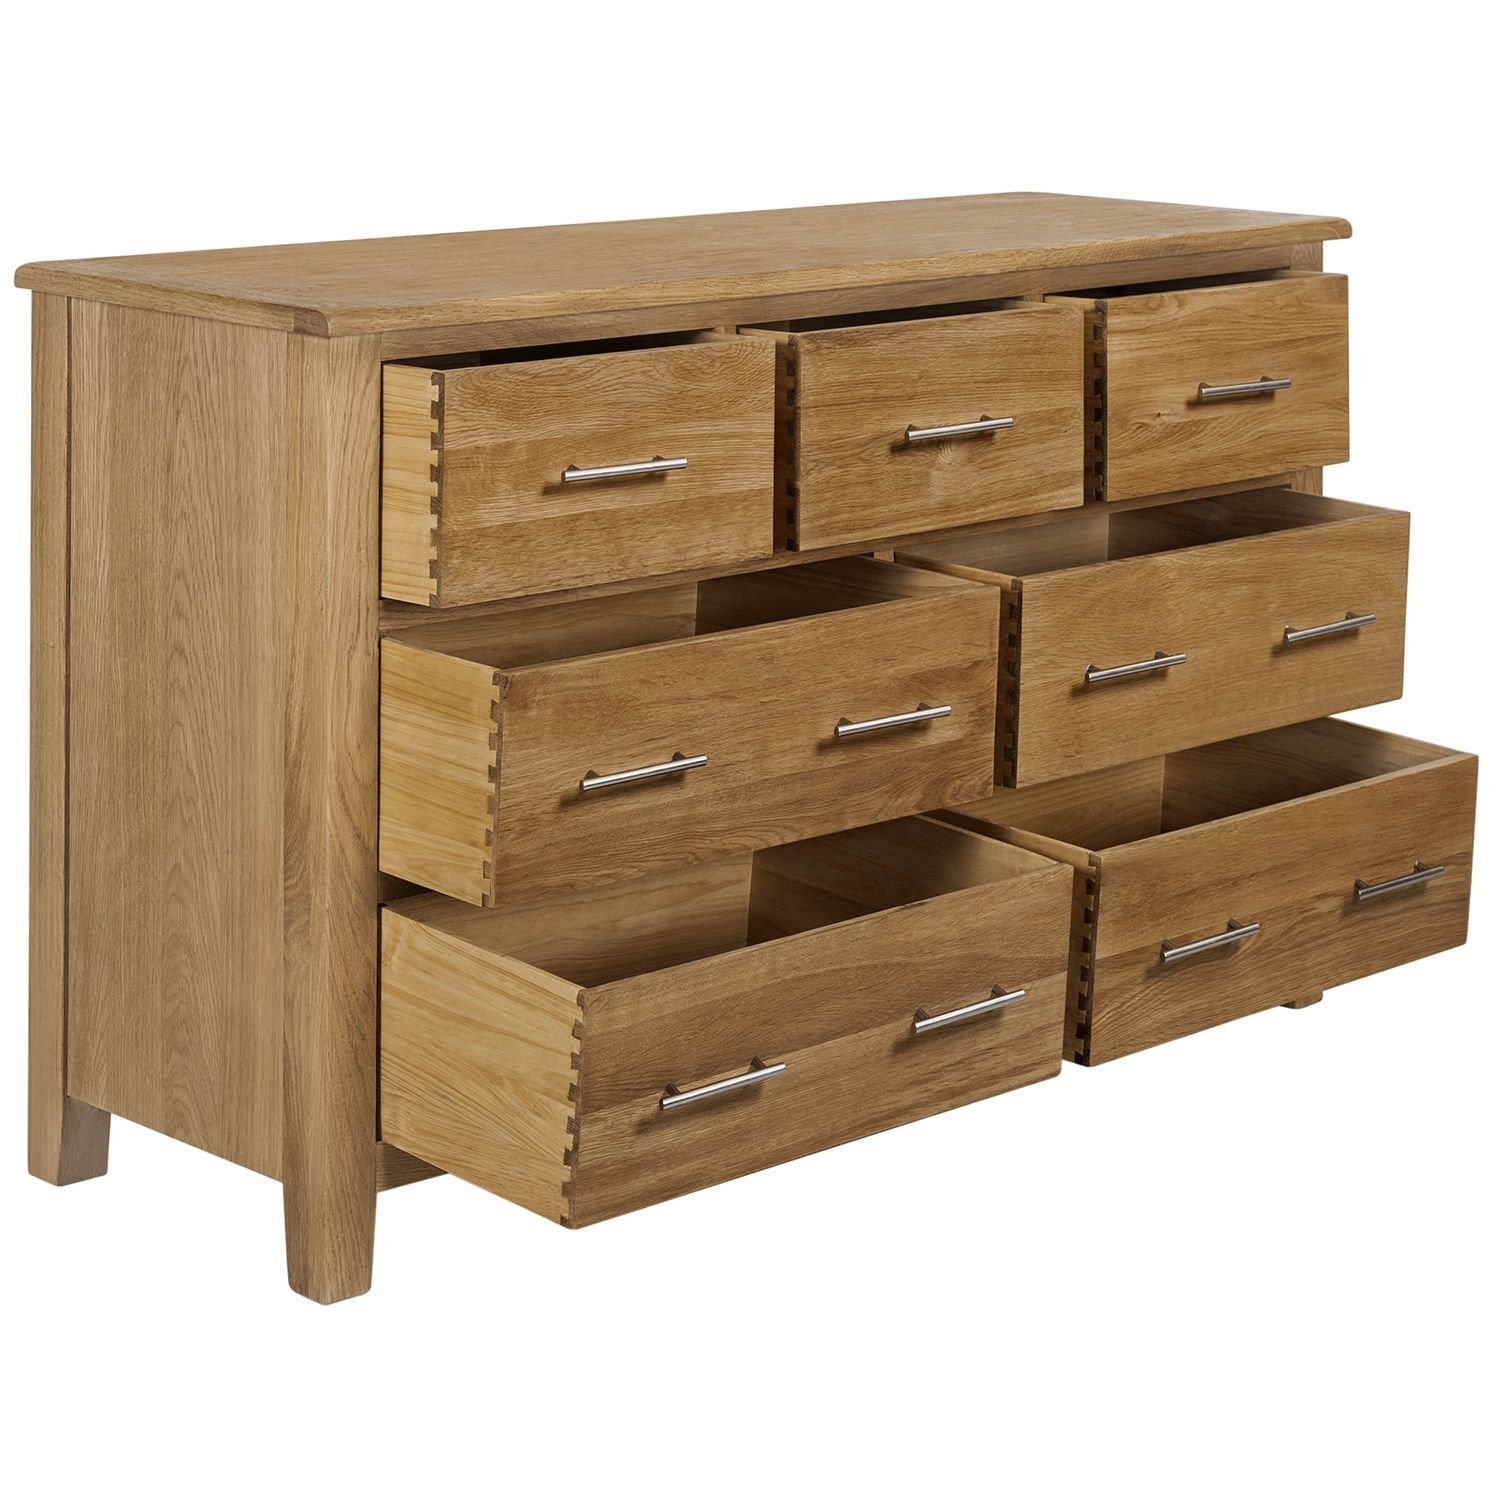 Kansas 3 Over 4 Chest Drawers Furniture, Chest of